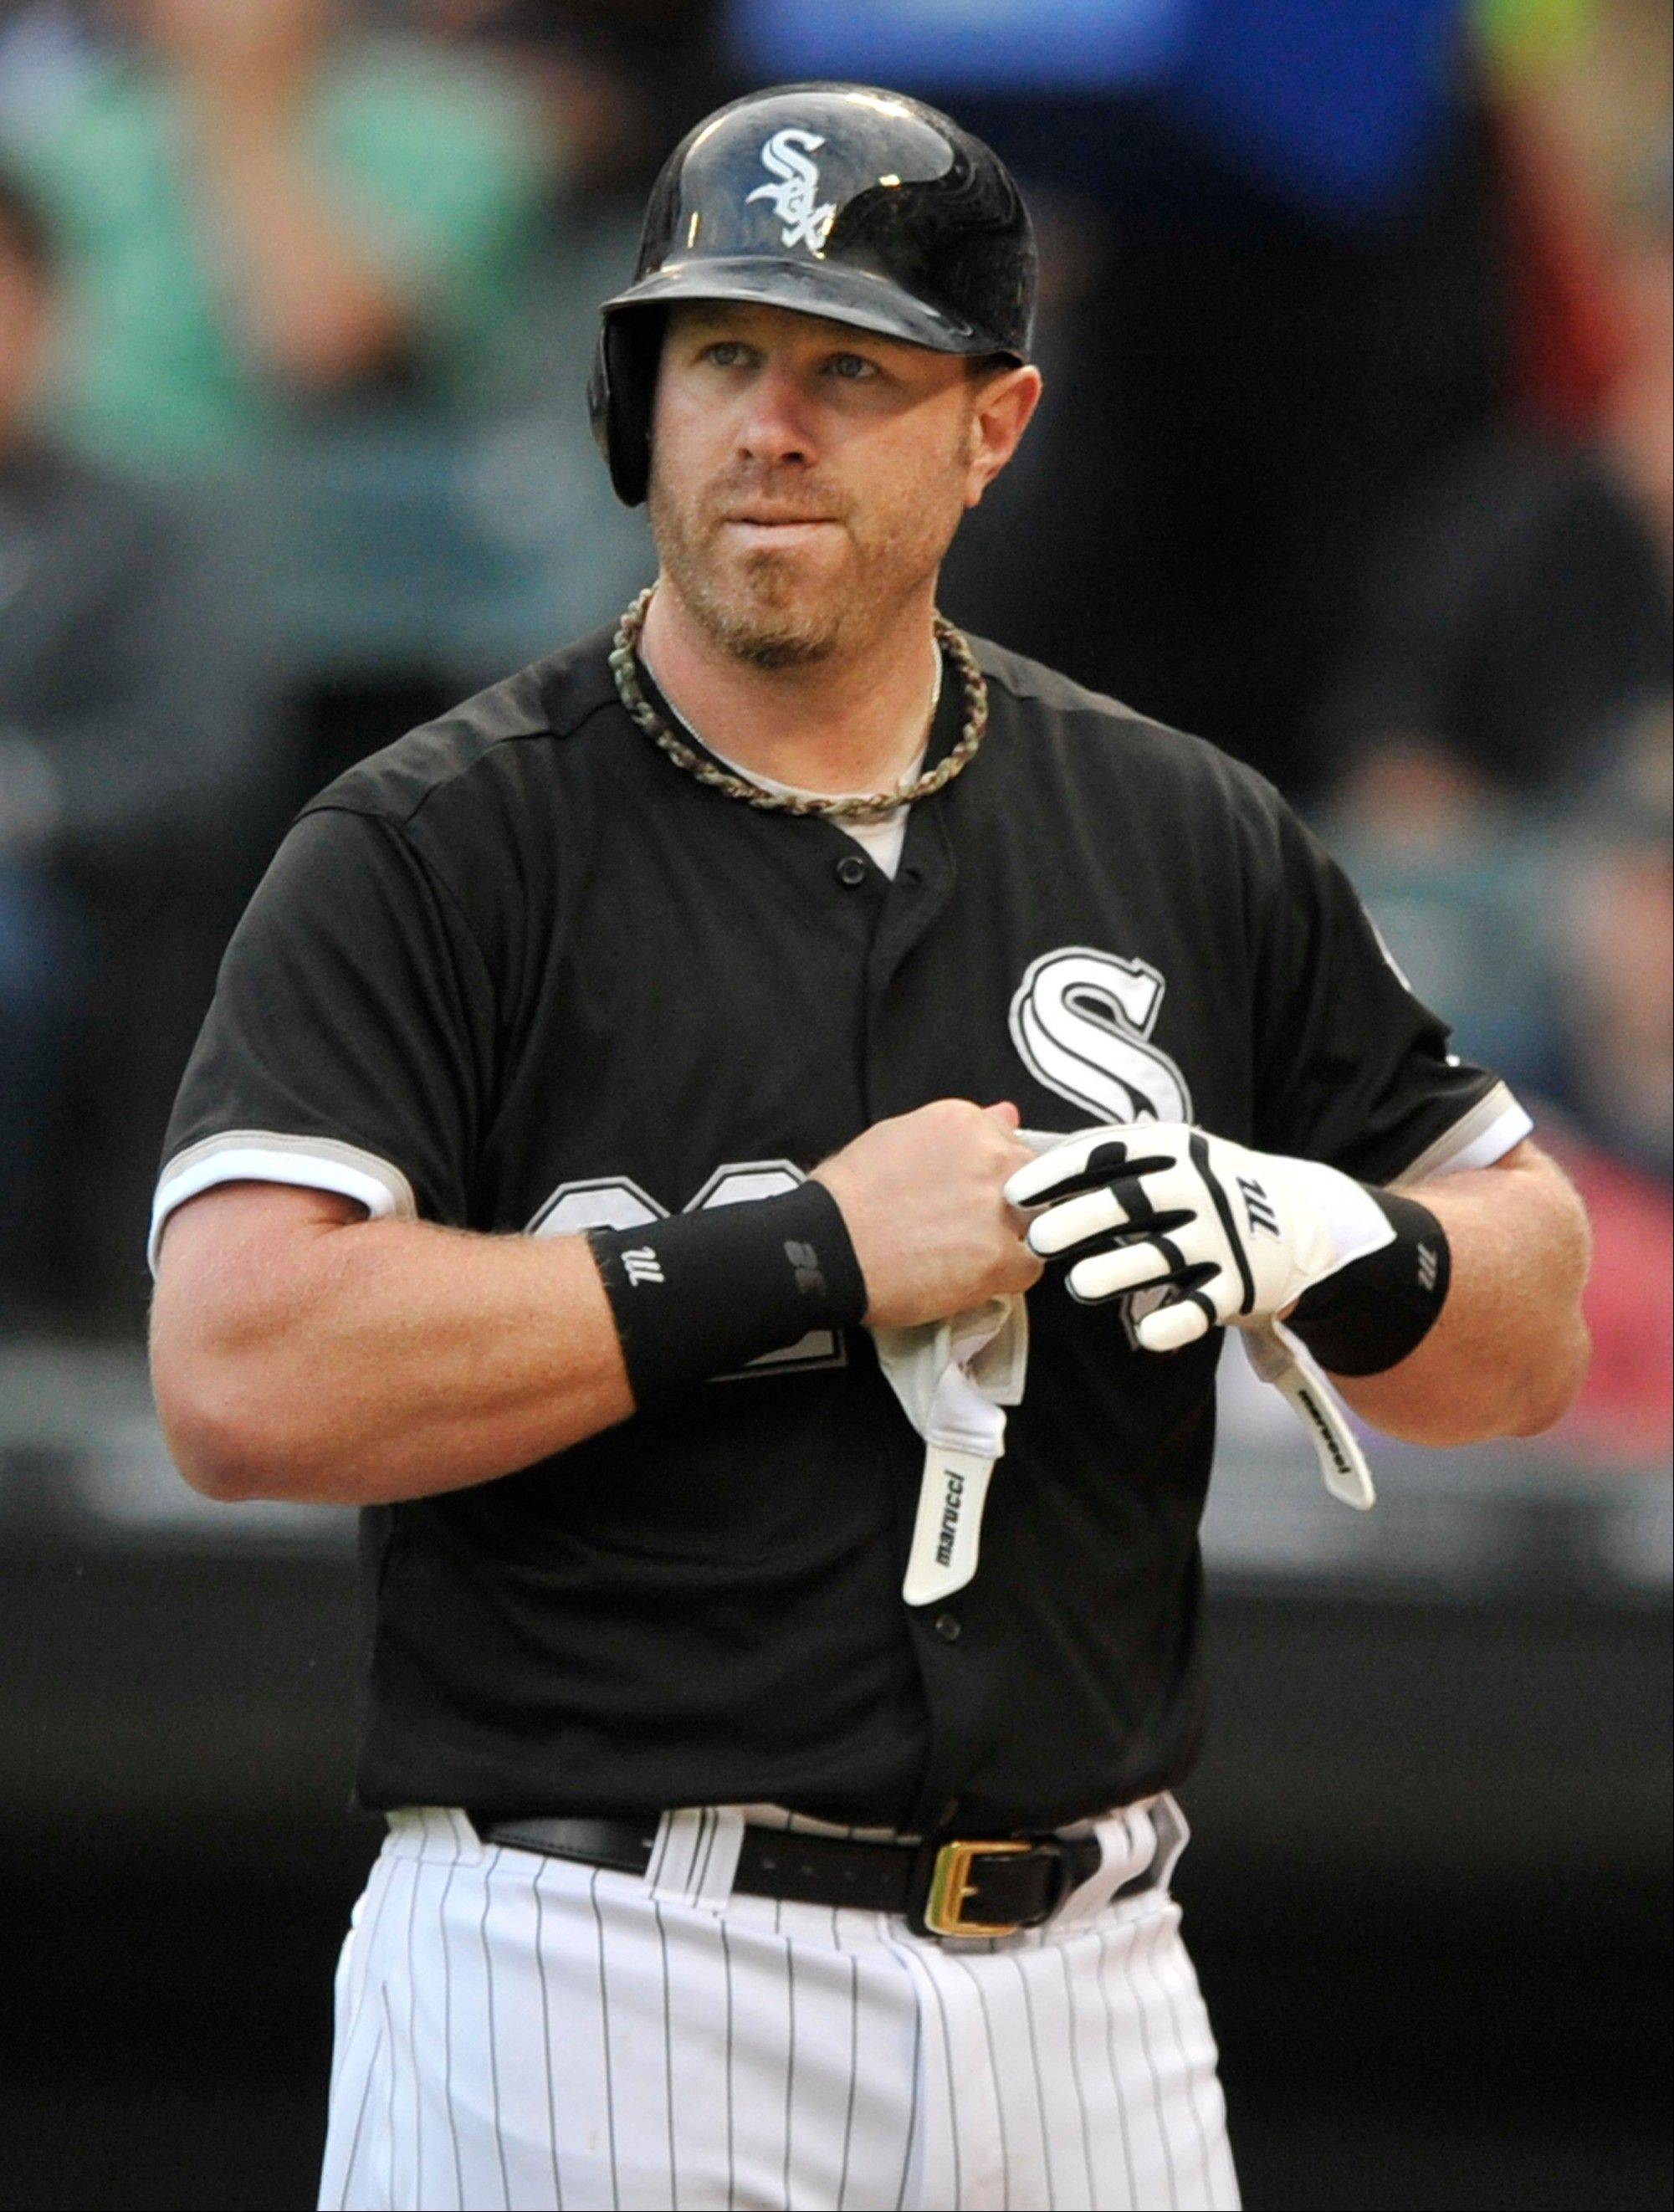 White Sox�s Adam Dunn reacts after striking out during the first inning of a baseball game against the Kansas City Royals in Chicago, Saturday, July 27, 2013.